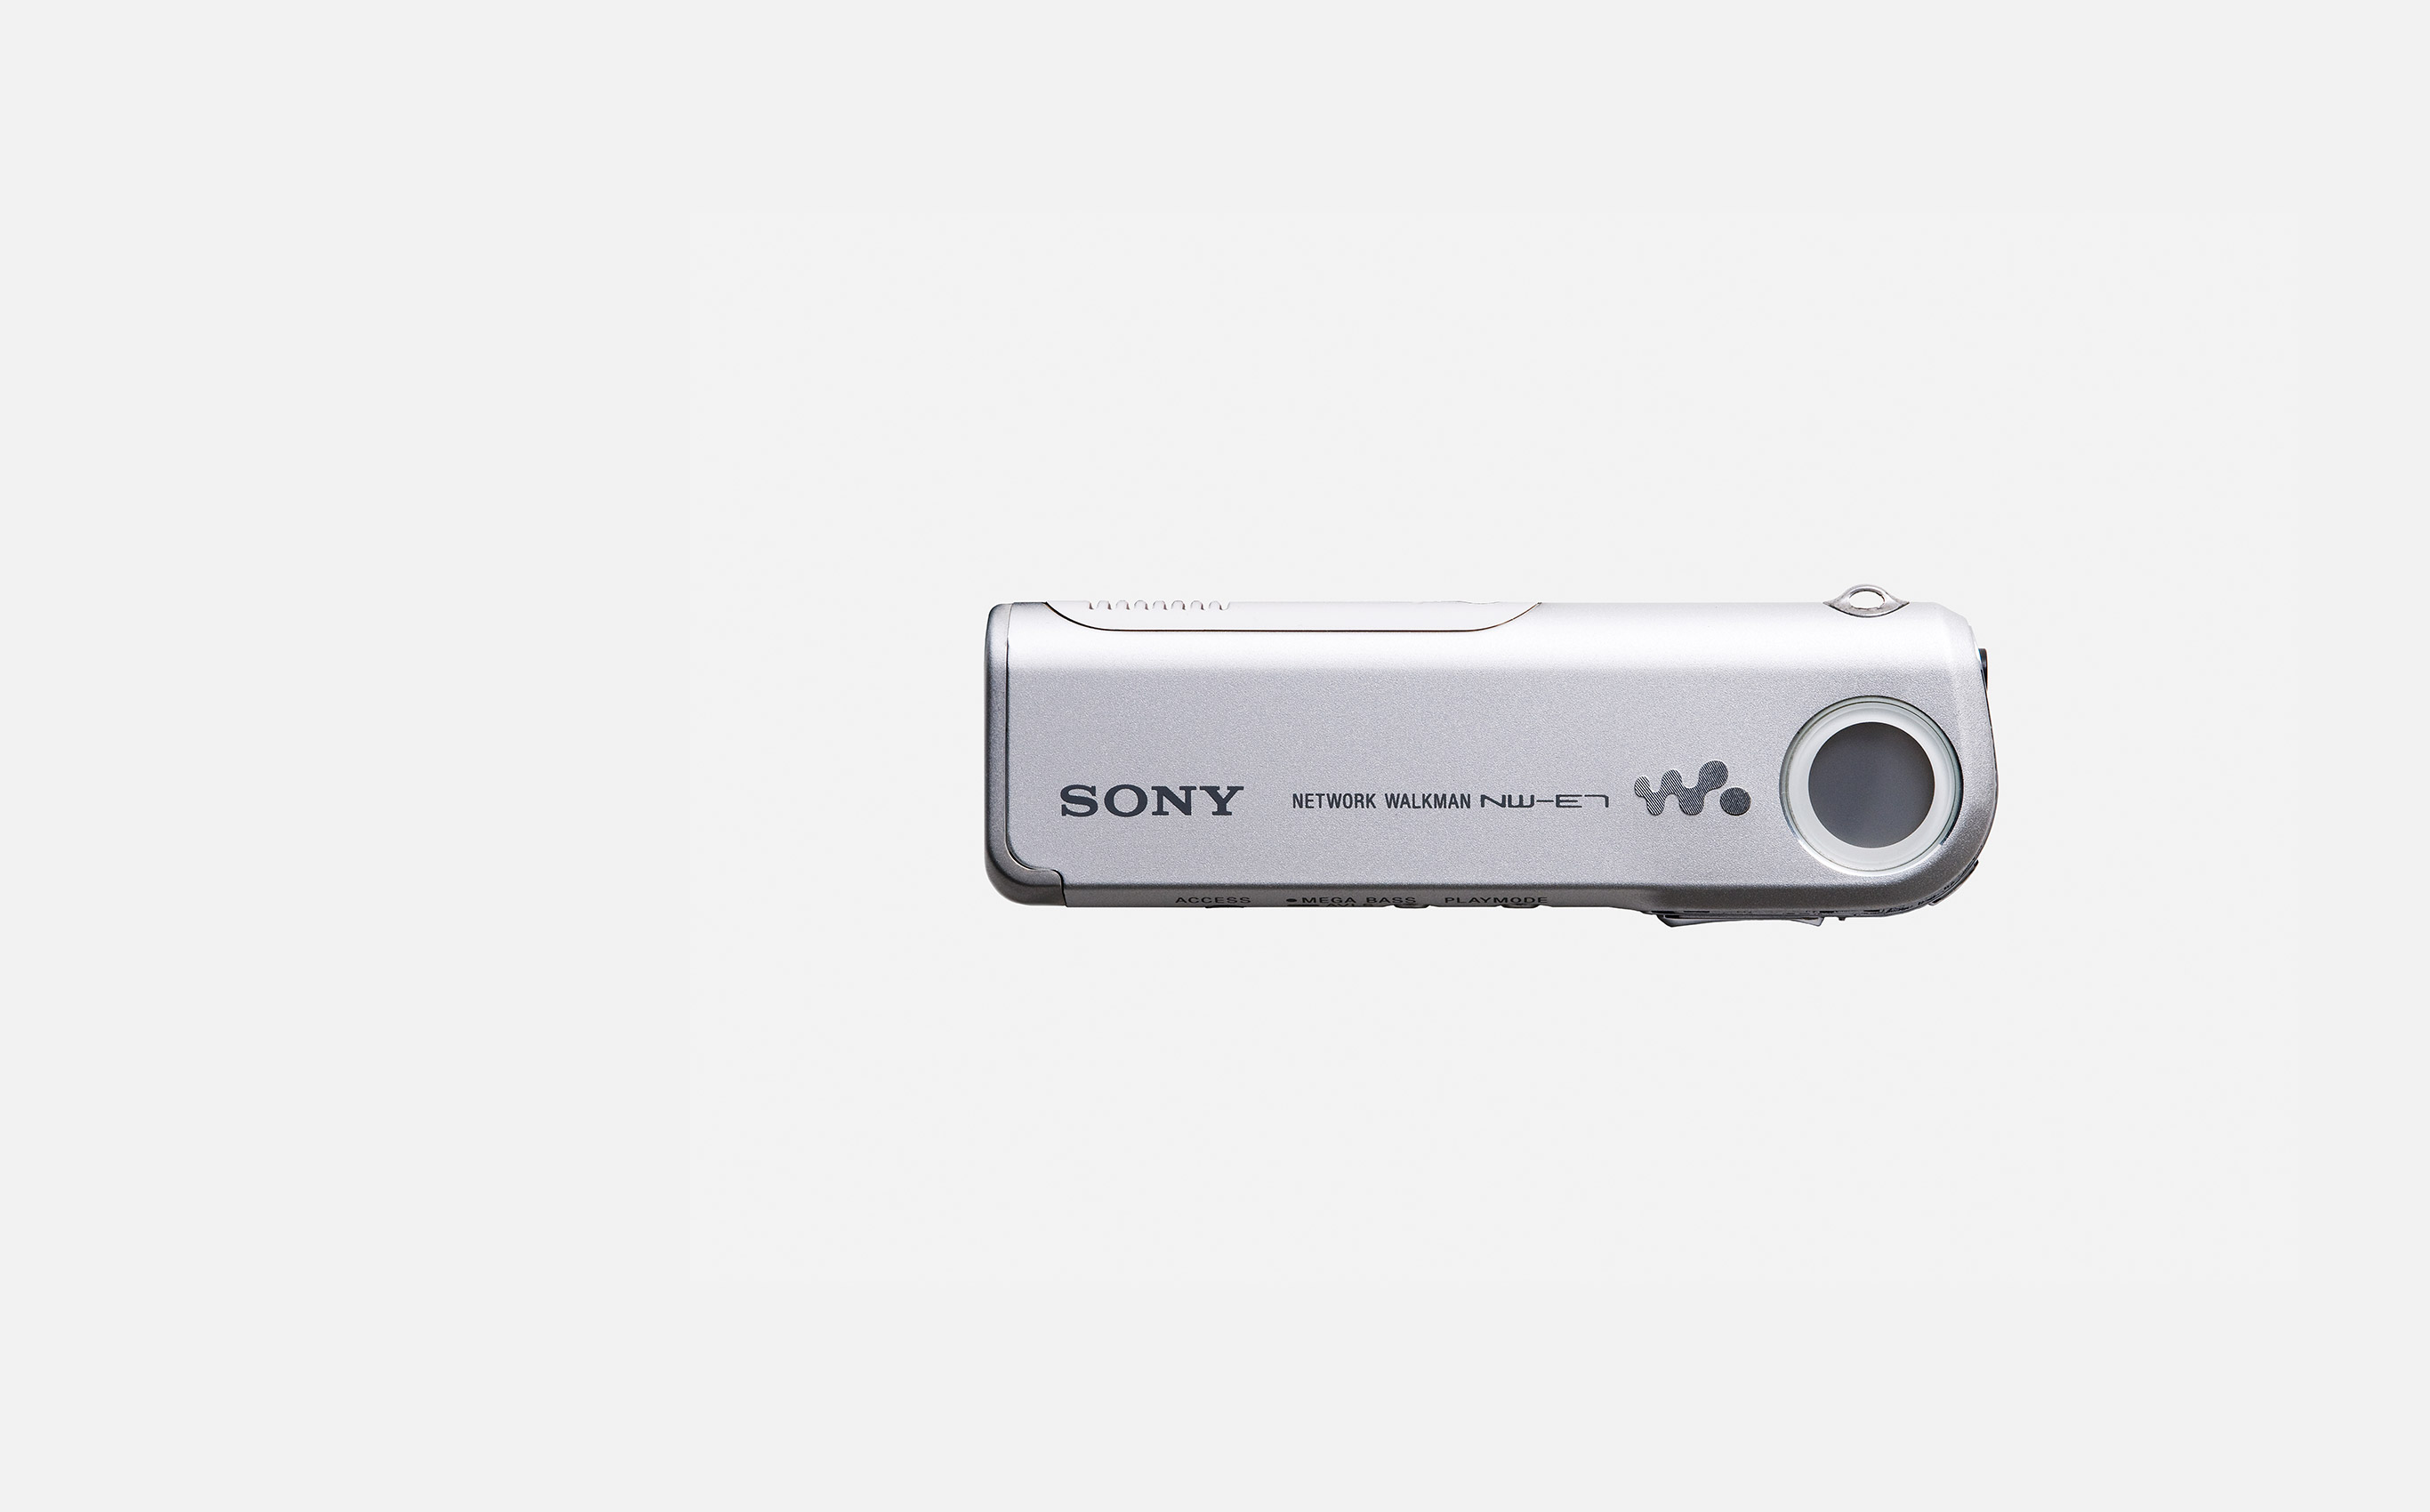 Network Walkman E7